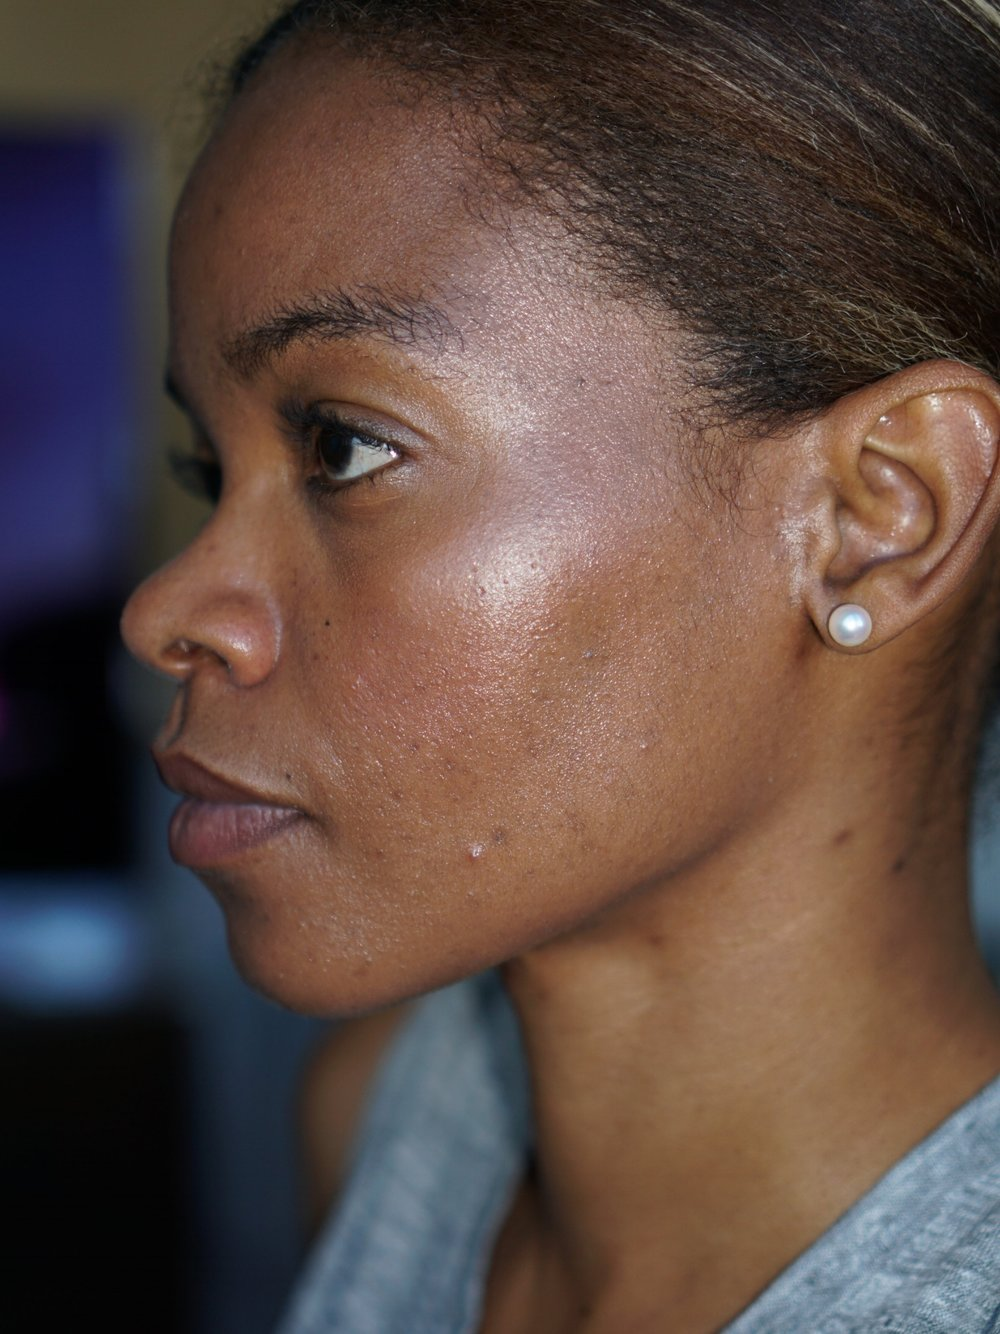 This picture was taken a few days earlier, the day I received my Glossier products and 5 hours after application. Here i'm wearing the Perfecting skin tint and Stretch concealer (both in deep), MAC highlighter on my cheekbones & Clinique blush on my cheeks. On my lips is the remnants of Glossier's Generation G (in Jam). [please excuse the unruly brows]